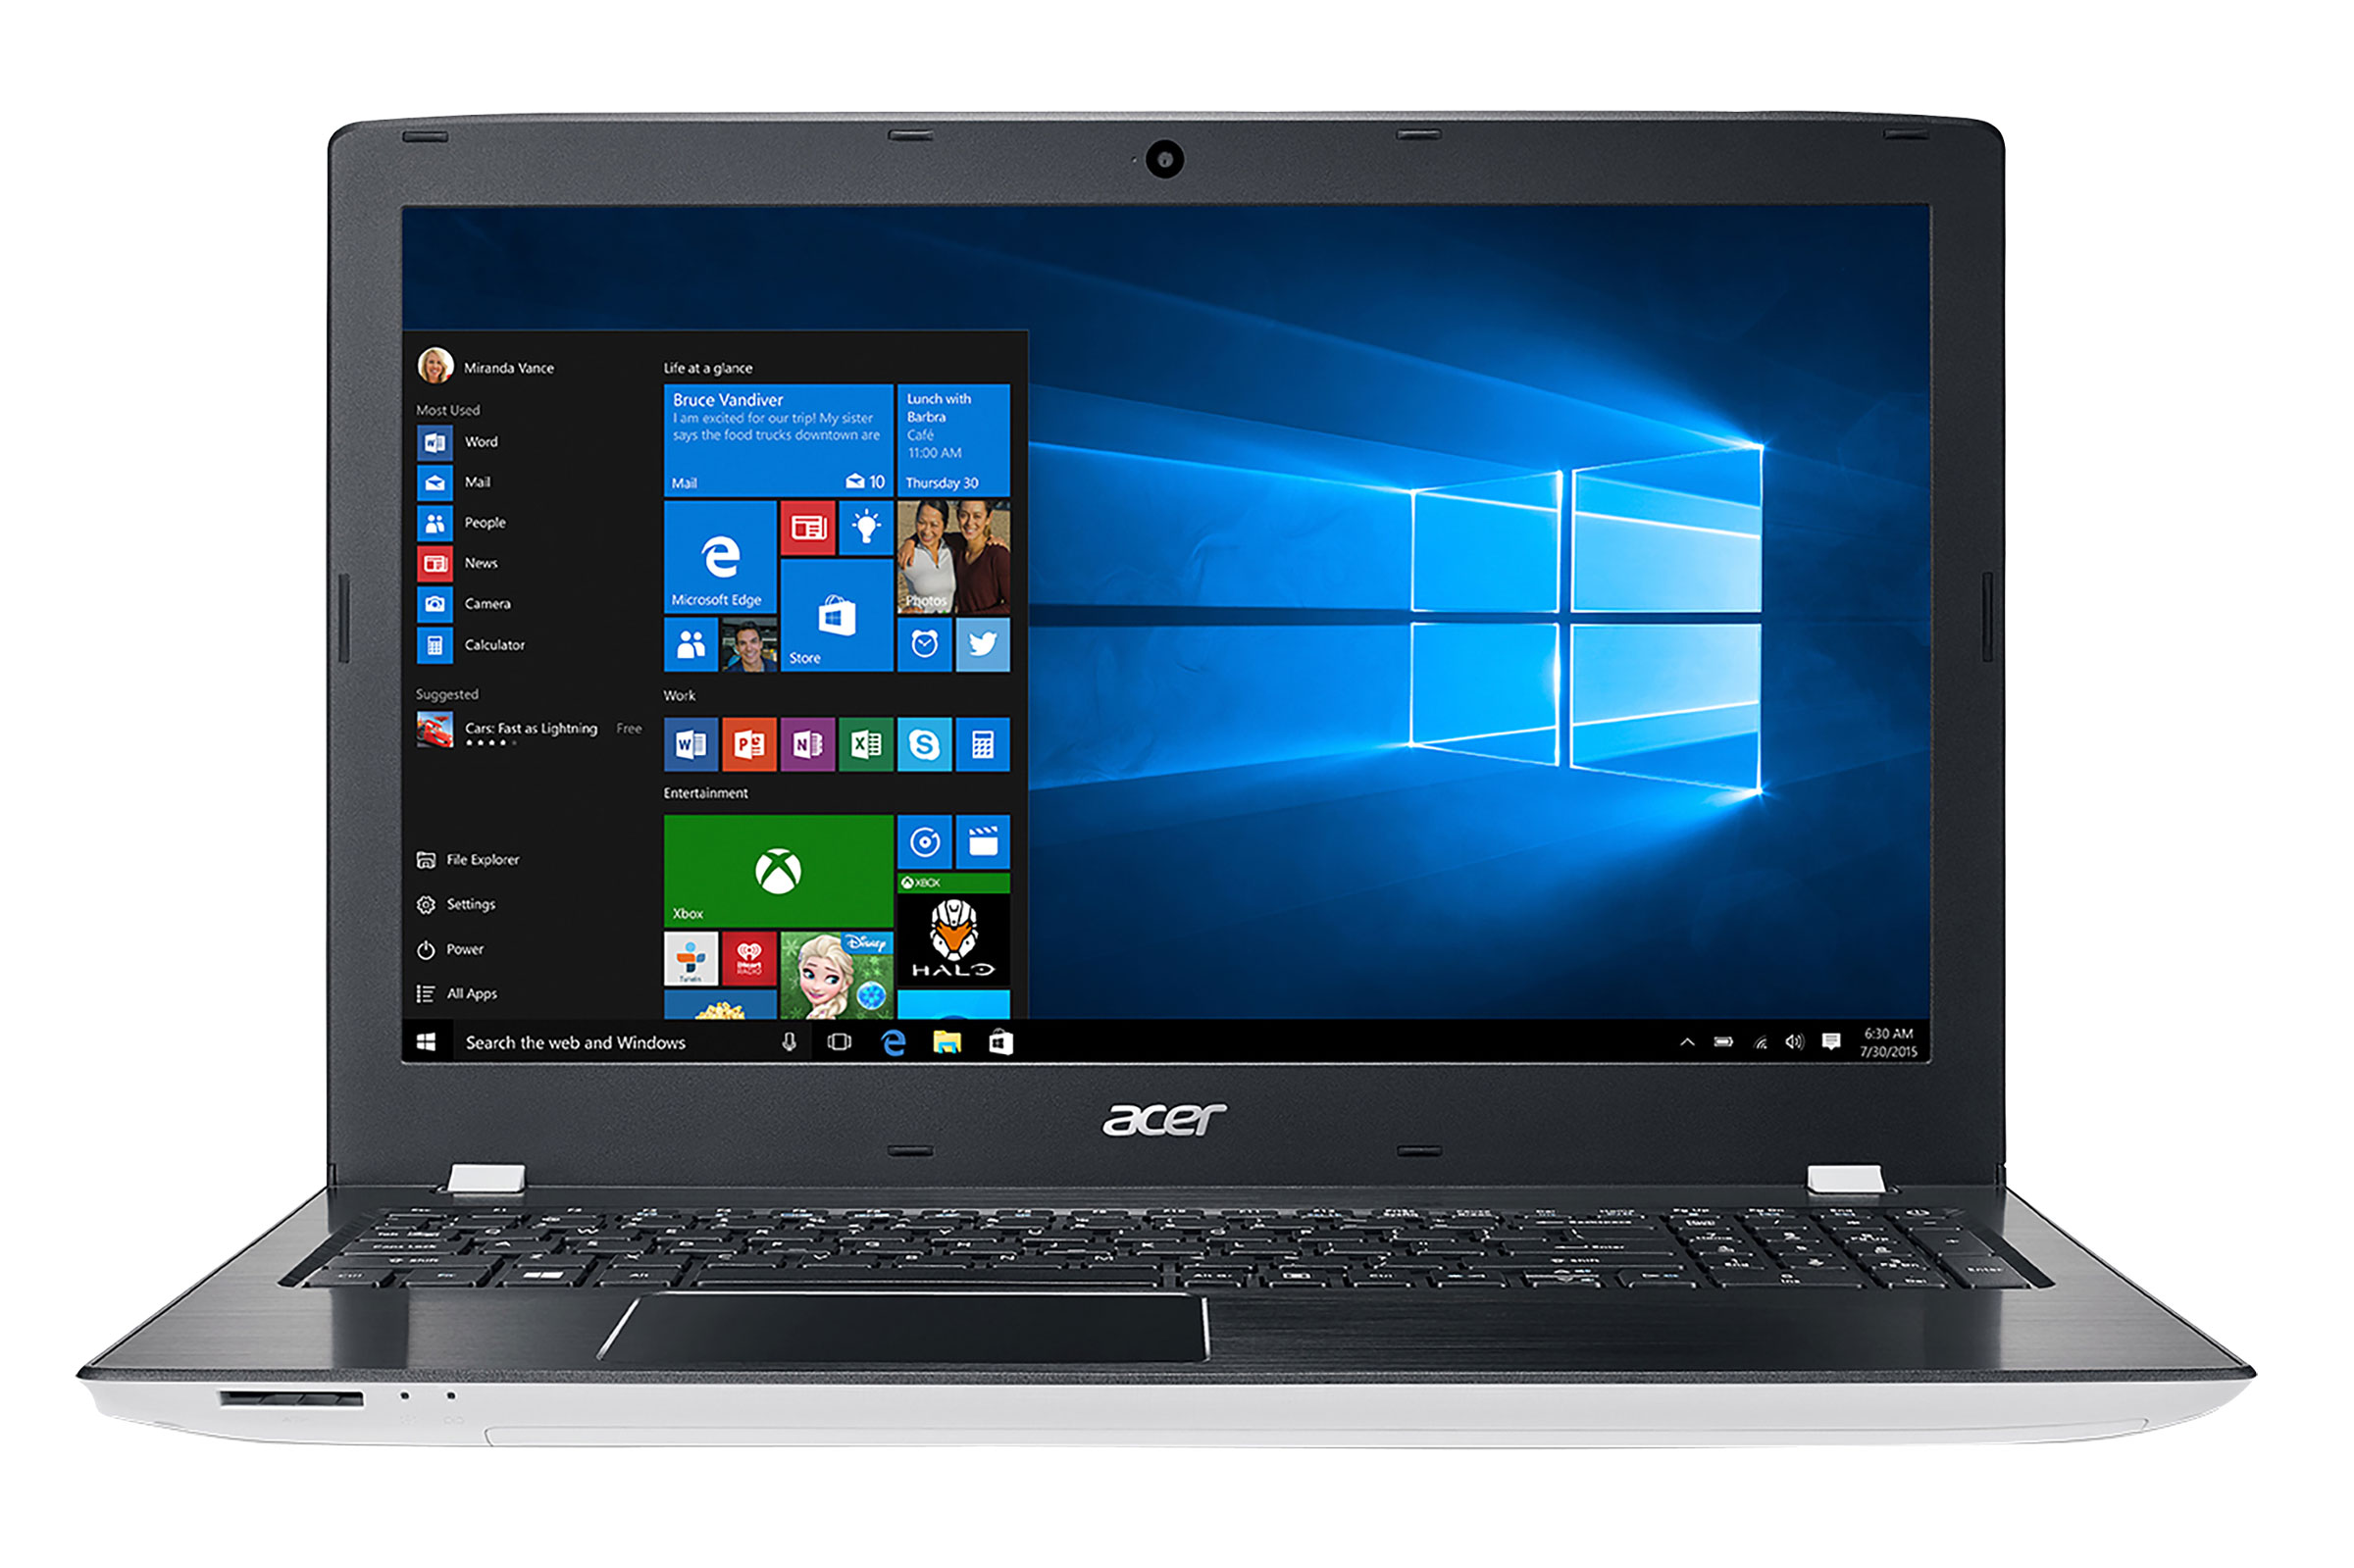 Acer Aspire ES 15 E5-575-516N Intel Core 1TB HDD 8GB RAM 156 Notebook